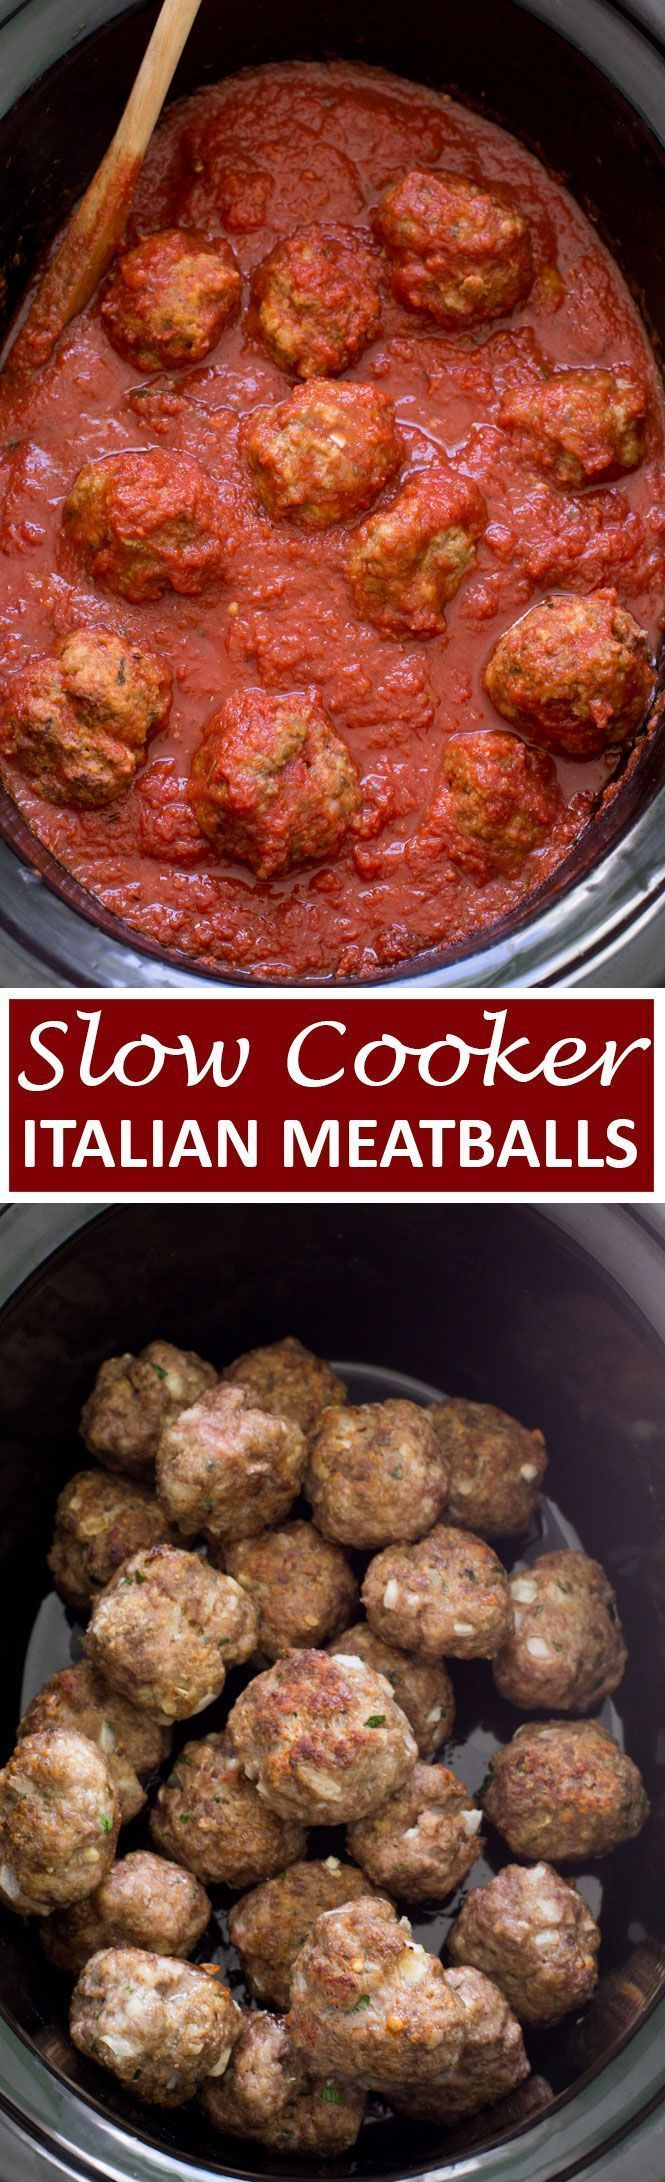 Cooker Italian Meatballs Super Tender Slow Cooker Italian Meatballs. Loaded with Parmesan cheese, fresh parsley and garlic. They melt in your mouth and are incredibly tender. Simmered low and slow for 4 hours! | Super Tender Slow Cooker Italian Meatballs. Loaded with Parmesan cheese, fresh parsley and garlic. They melt in your mouth and are inc...